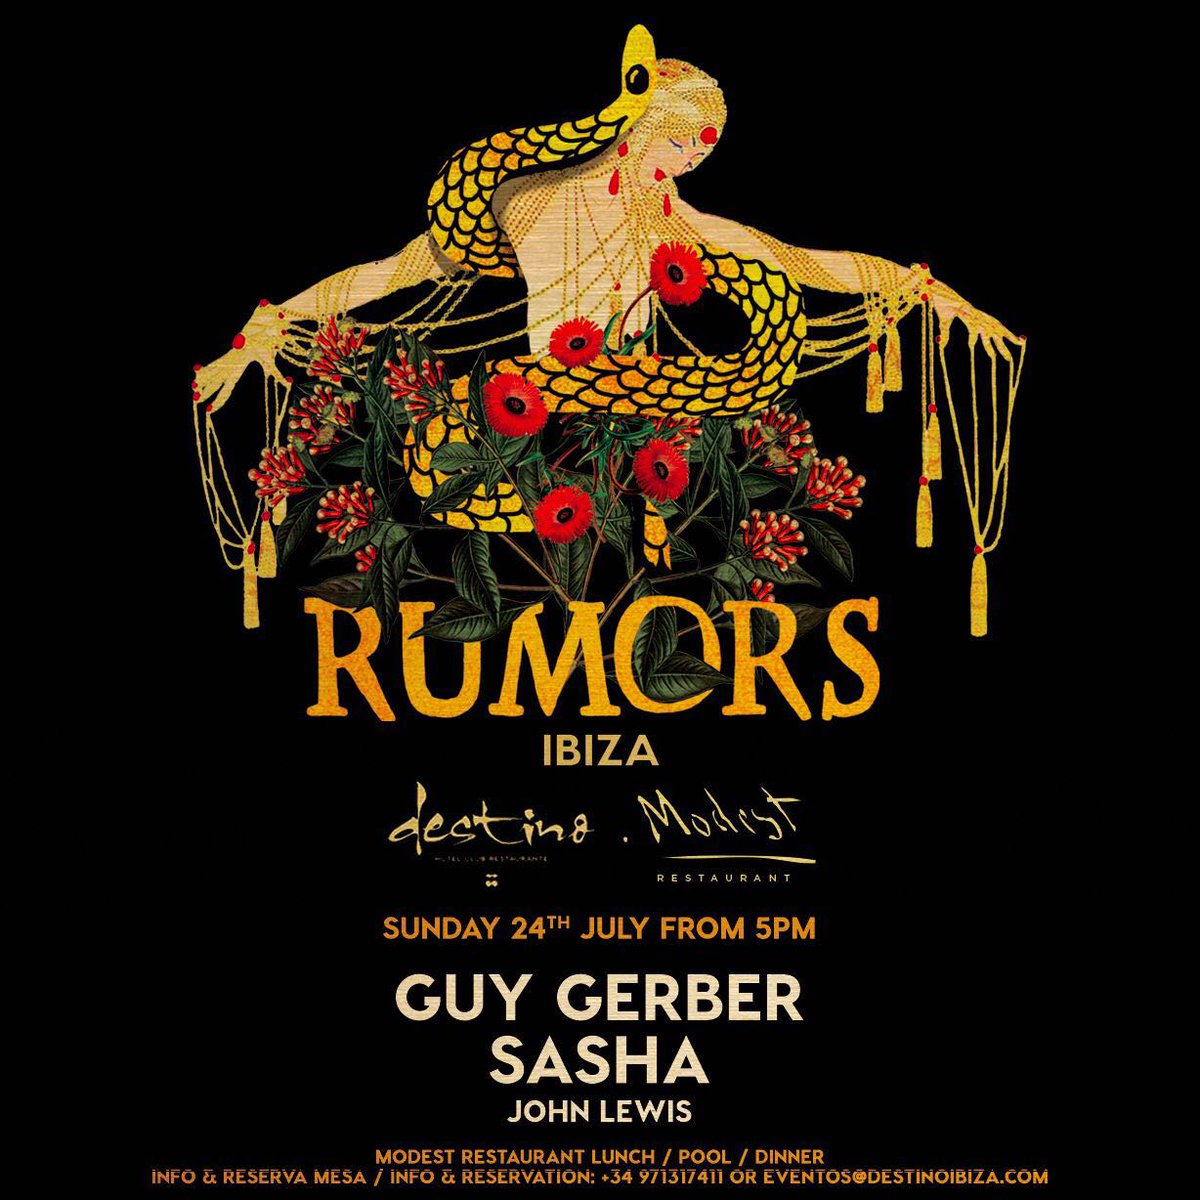 download → Sasha - live at Rumours (Destino, Ibiza) - 24-Jul-2016